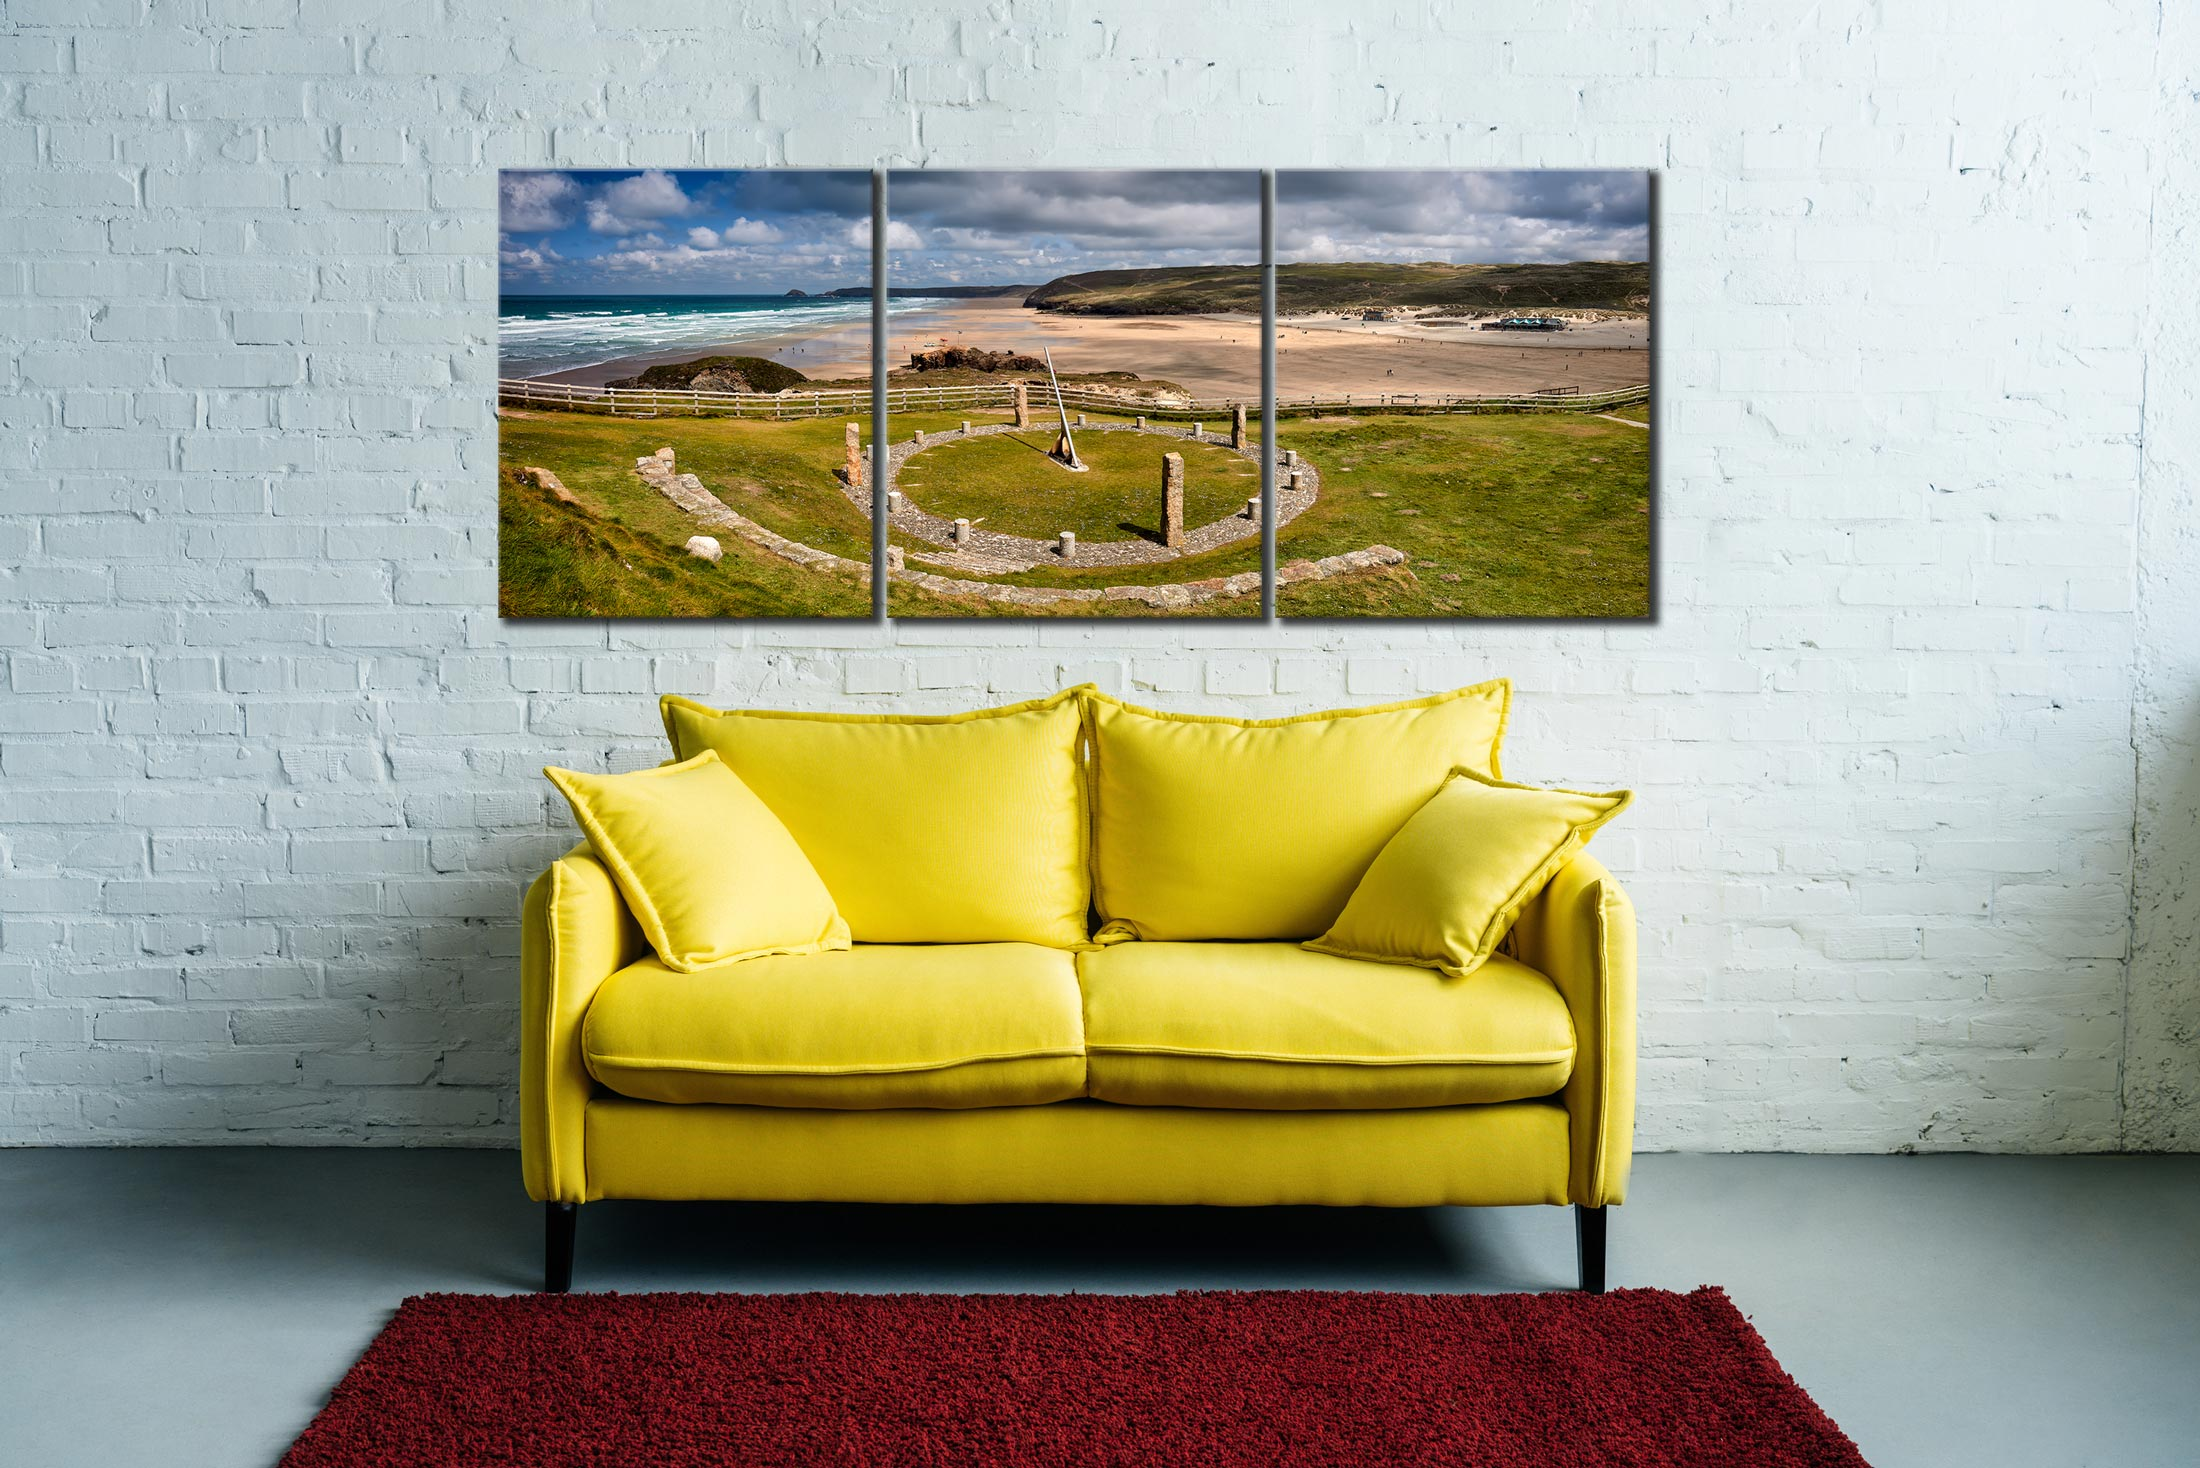 Perranporth Sundial and Beach - 3 Panel Canvas on Wall